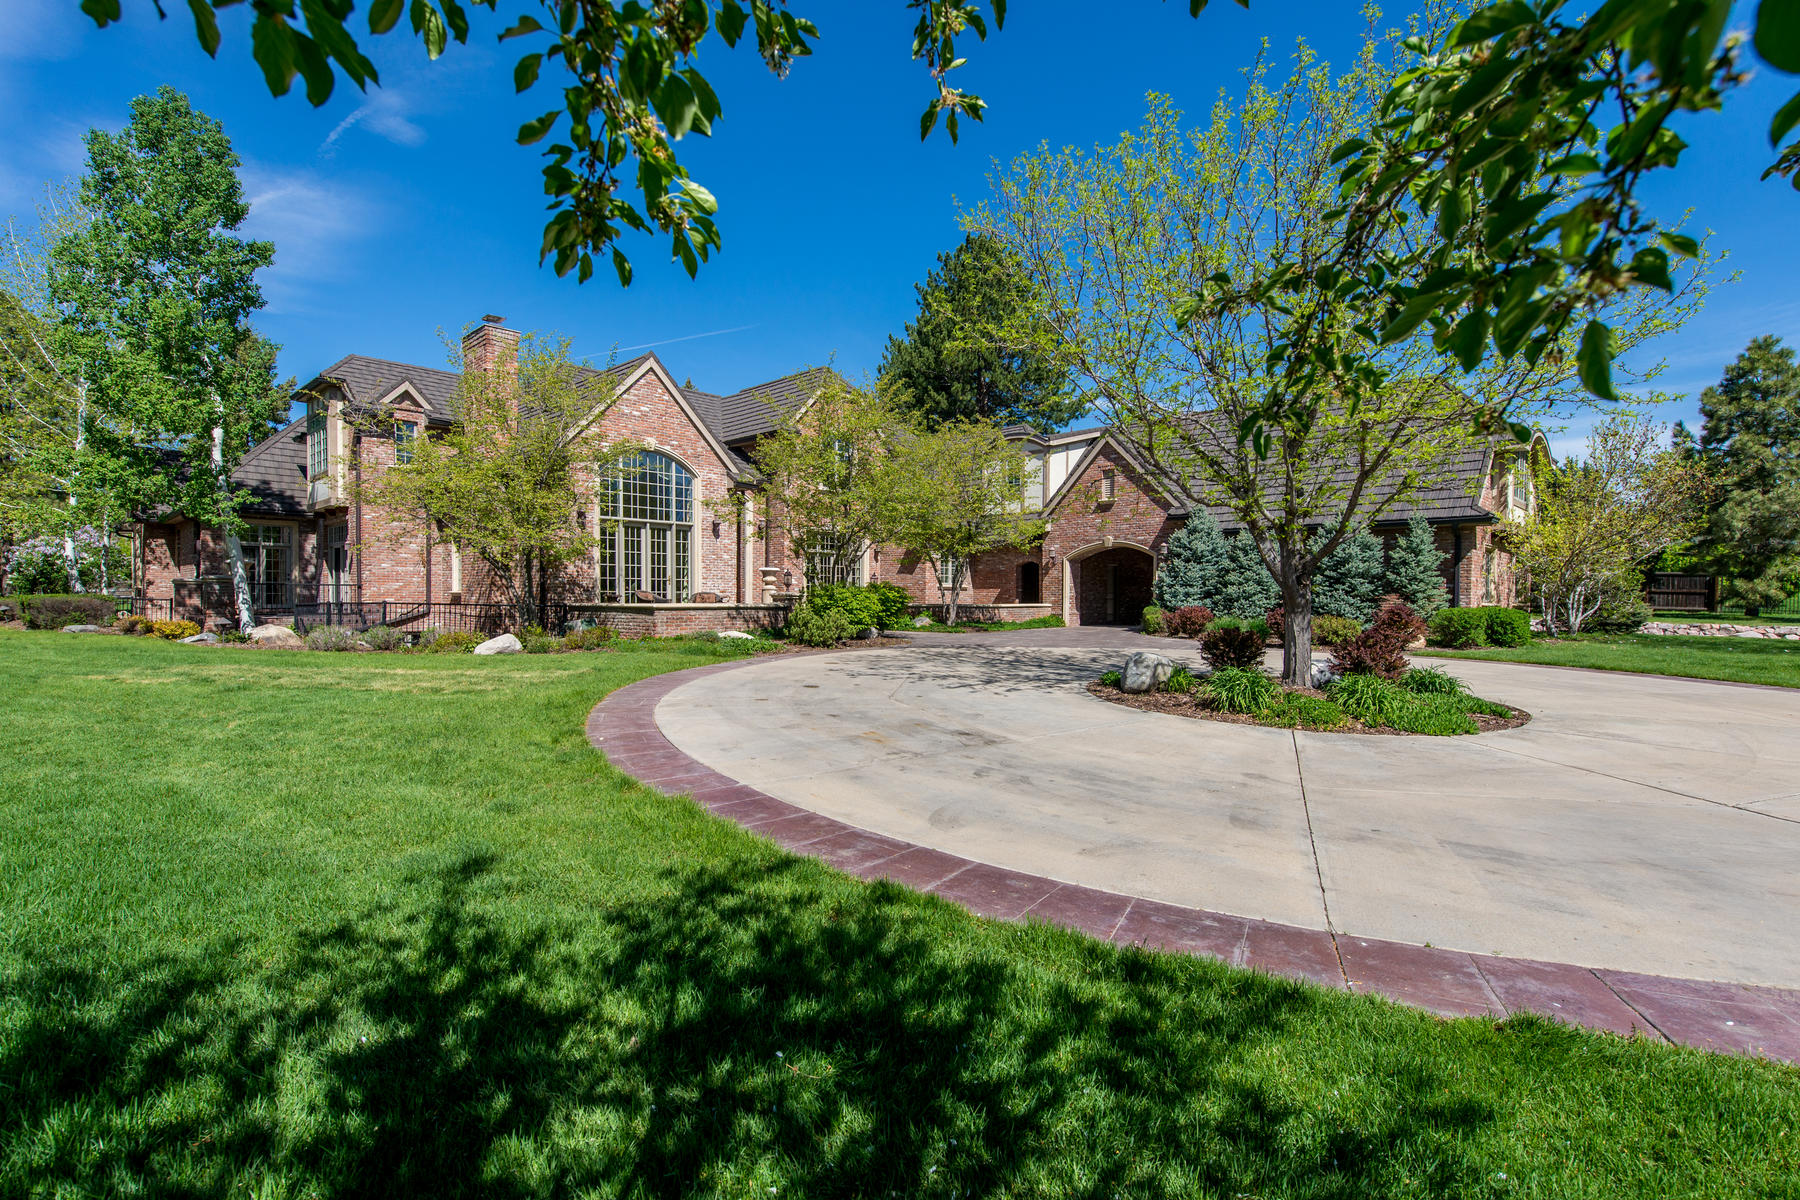 Single Family Home for Active at The Only Property of It's Kind in Cherry Hills Village 7 Vista Rd Cherry Hills Village, Colorado 80113 United States